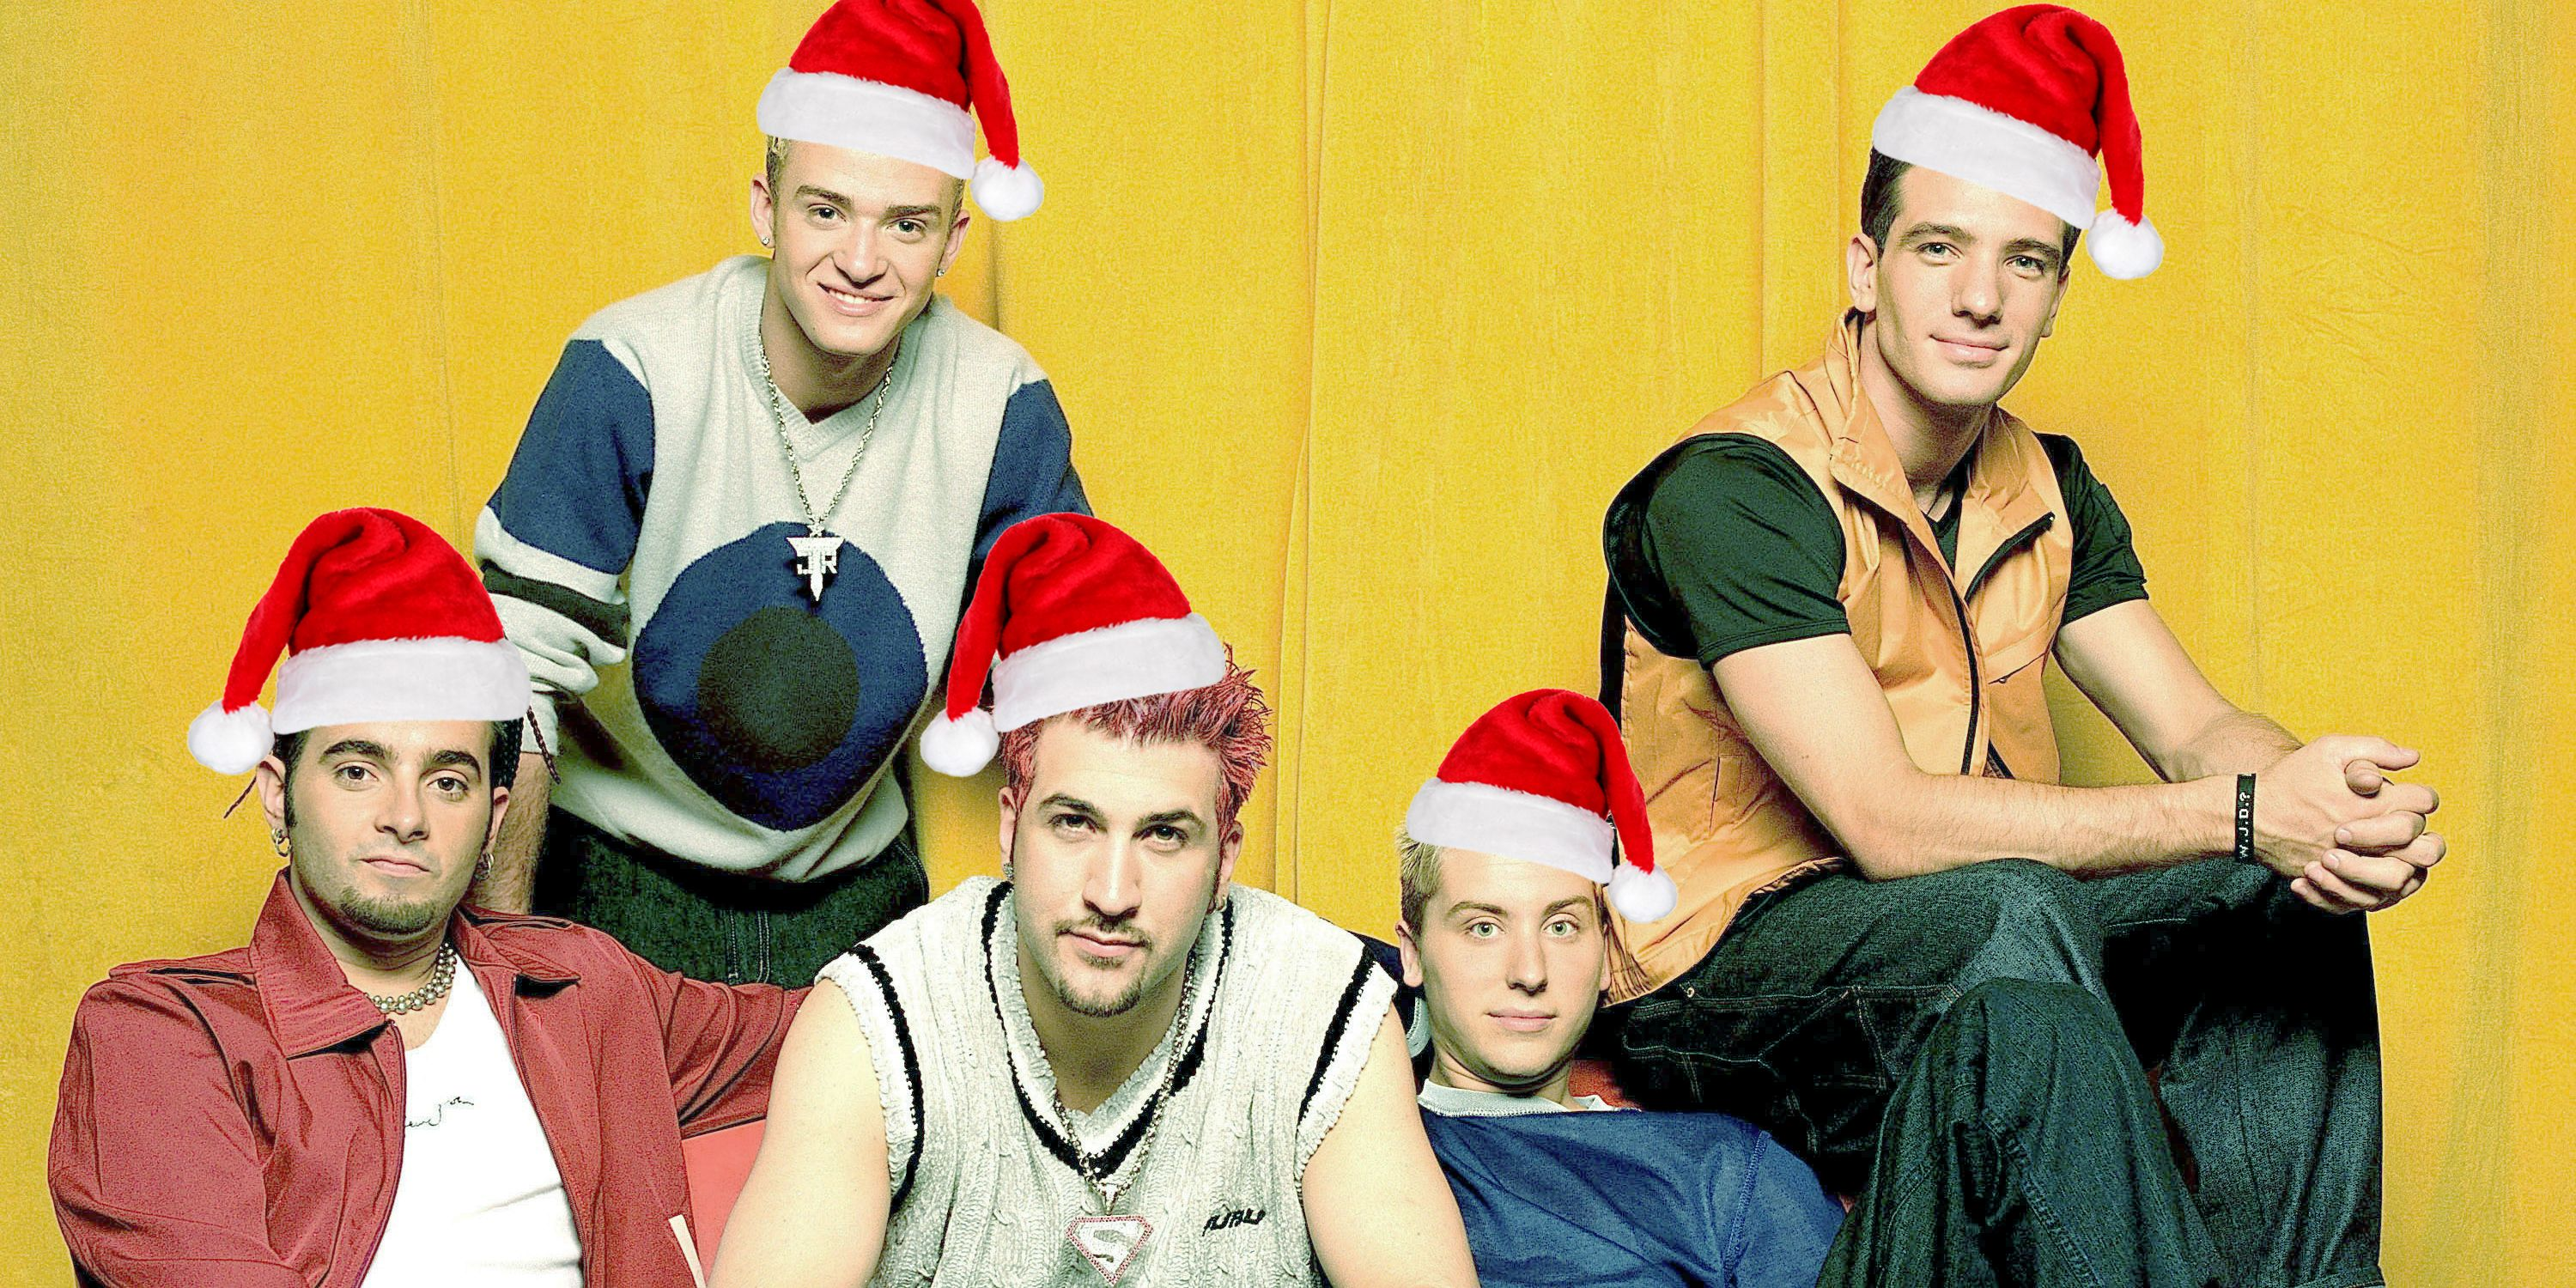 Let's Ruin the Season and Revisit NSYNC's 'Merry Christmas, Happy Holidays' Music Video, Shall We?